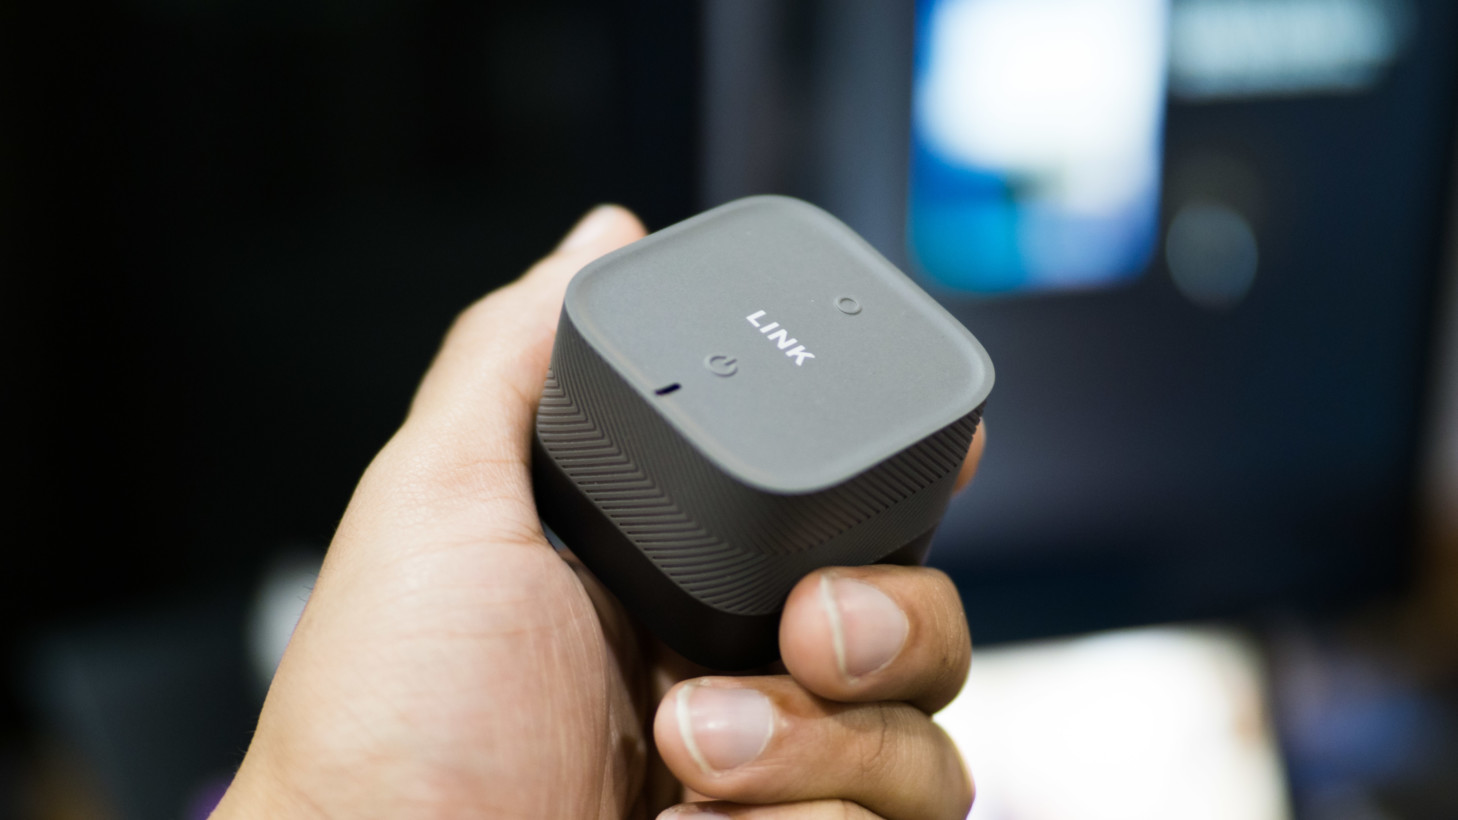 Fasetto Link: A tiny personal cloud that could solve your storage problems